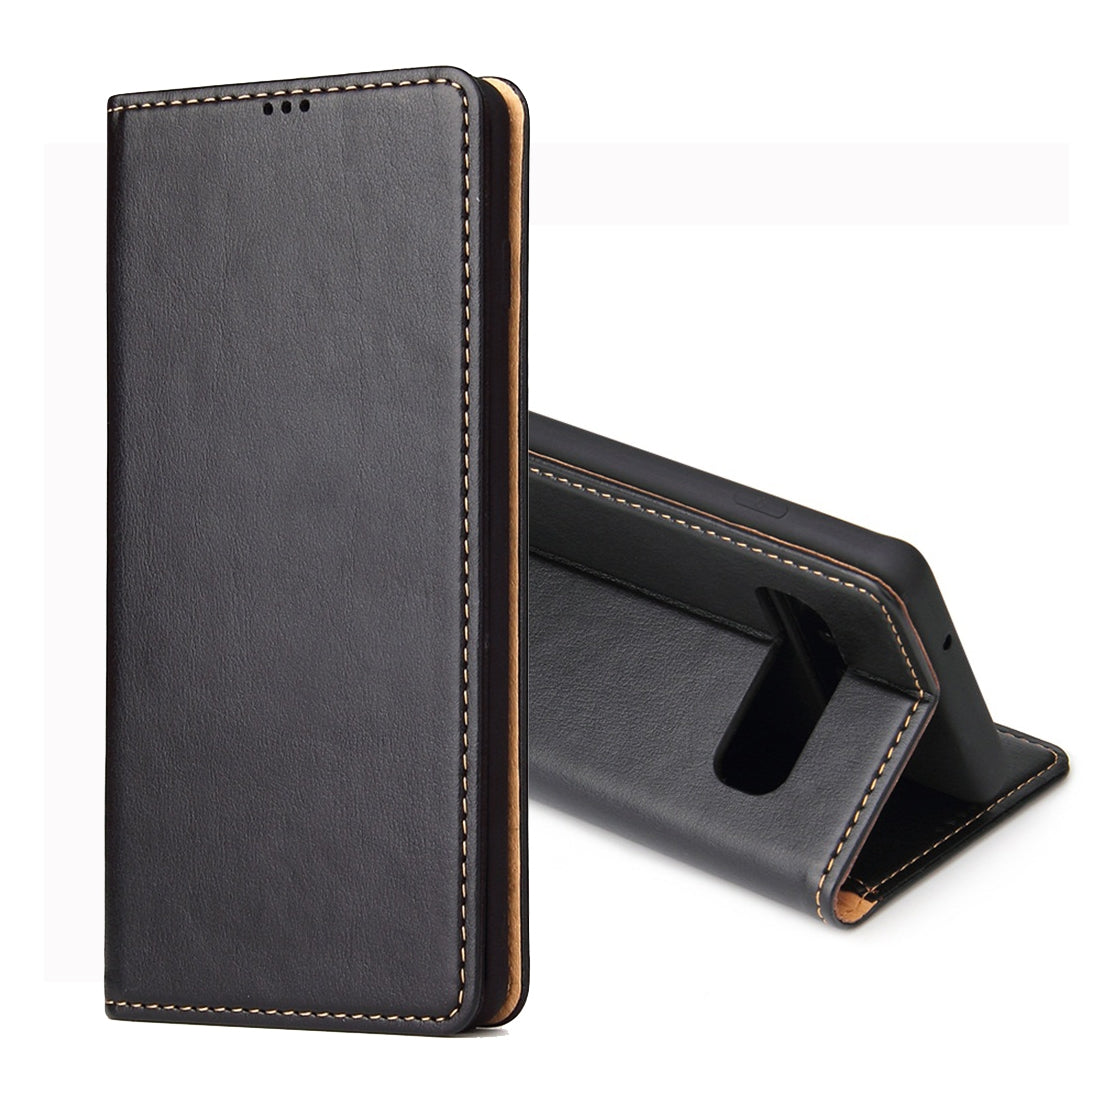 Dermis Texture PU Horizontal Flip Leather Case for Galaxy S10 Plus, with Holder & Card Slots & Wallet (Black)